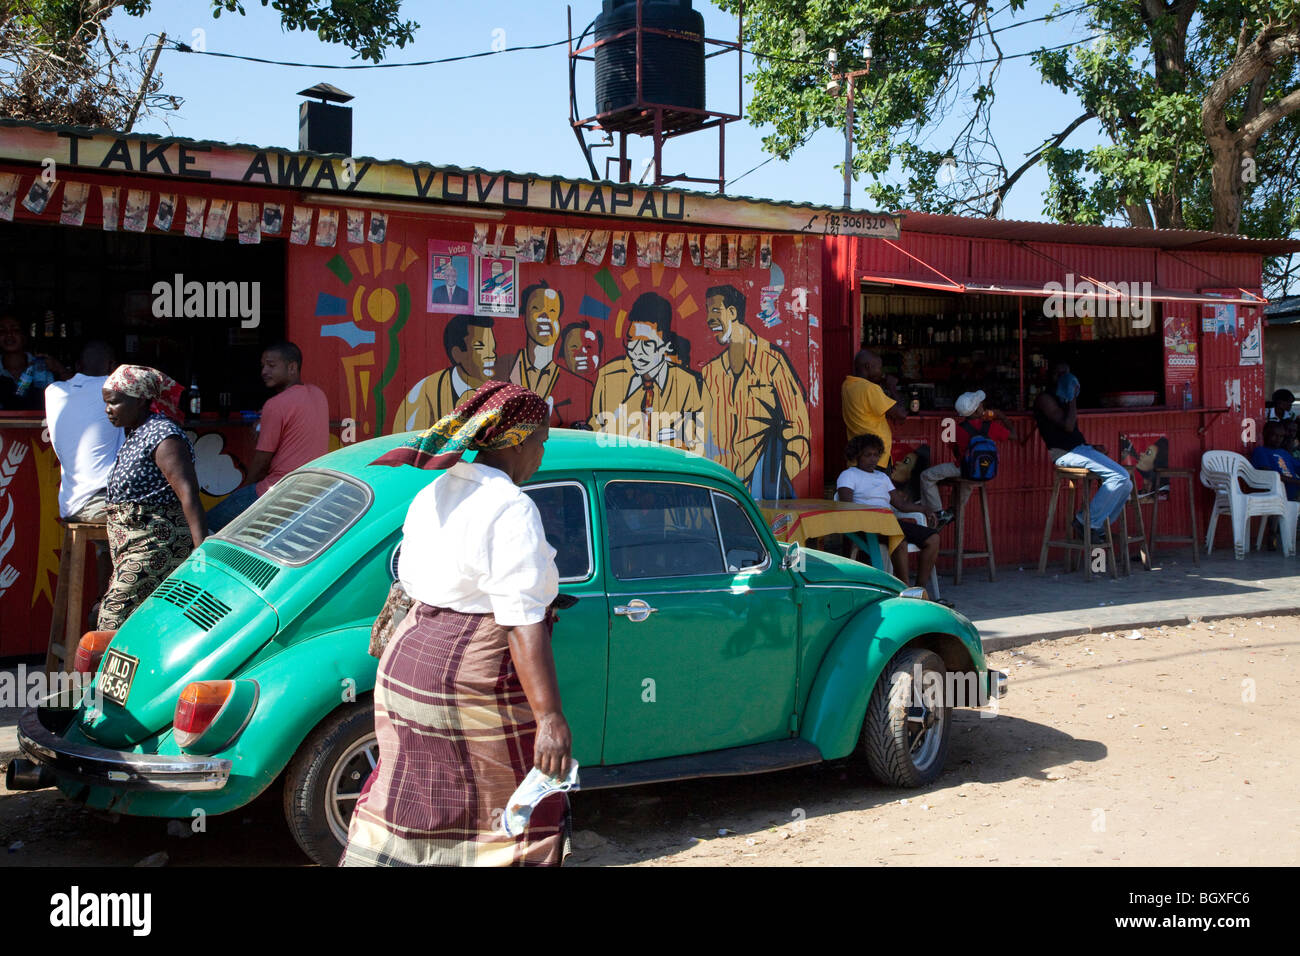 Street in Catembe, Maputo, Mozambique - Stock Image